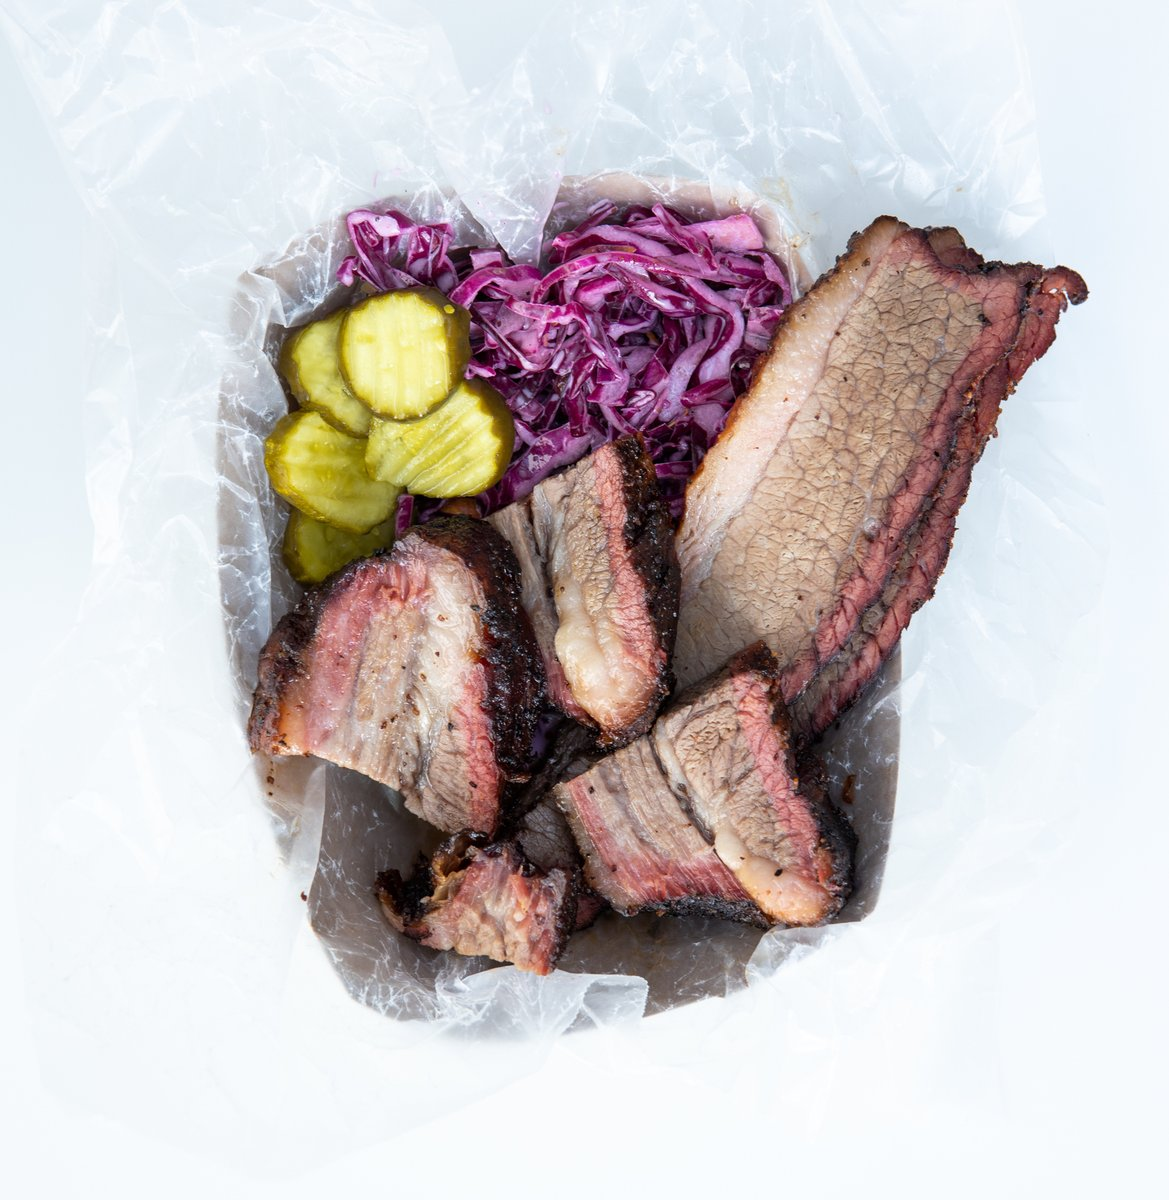 Brisket? Yes please.  #thermoworks #thermapen #smoke #smoker #bbq #smoked #barbecue #bbqlife #bbqfam #food #foodie #lowandslow #eeeeats #grillinfools #bbqpic #meatlife #carnivore #paleo #brisket https://t.co/sniFYkd2Vi